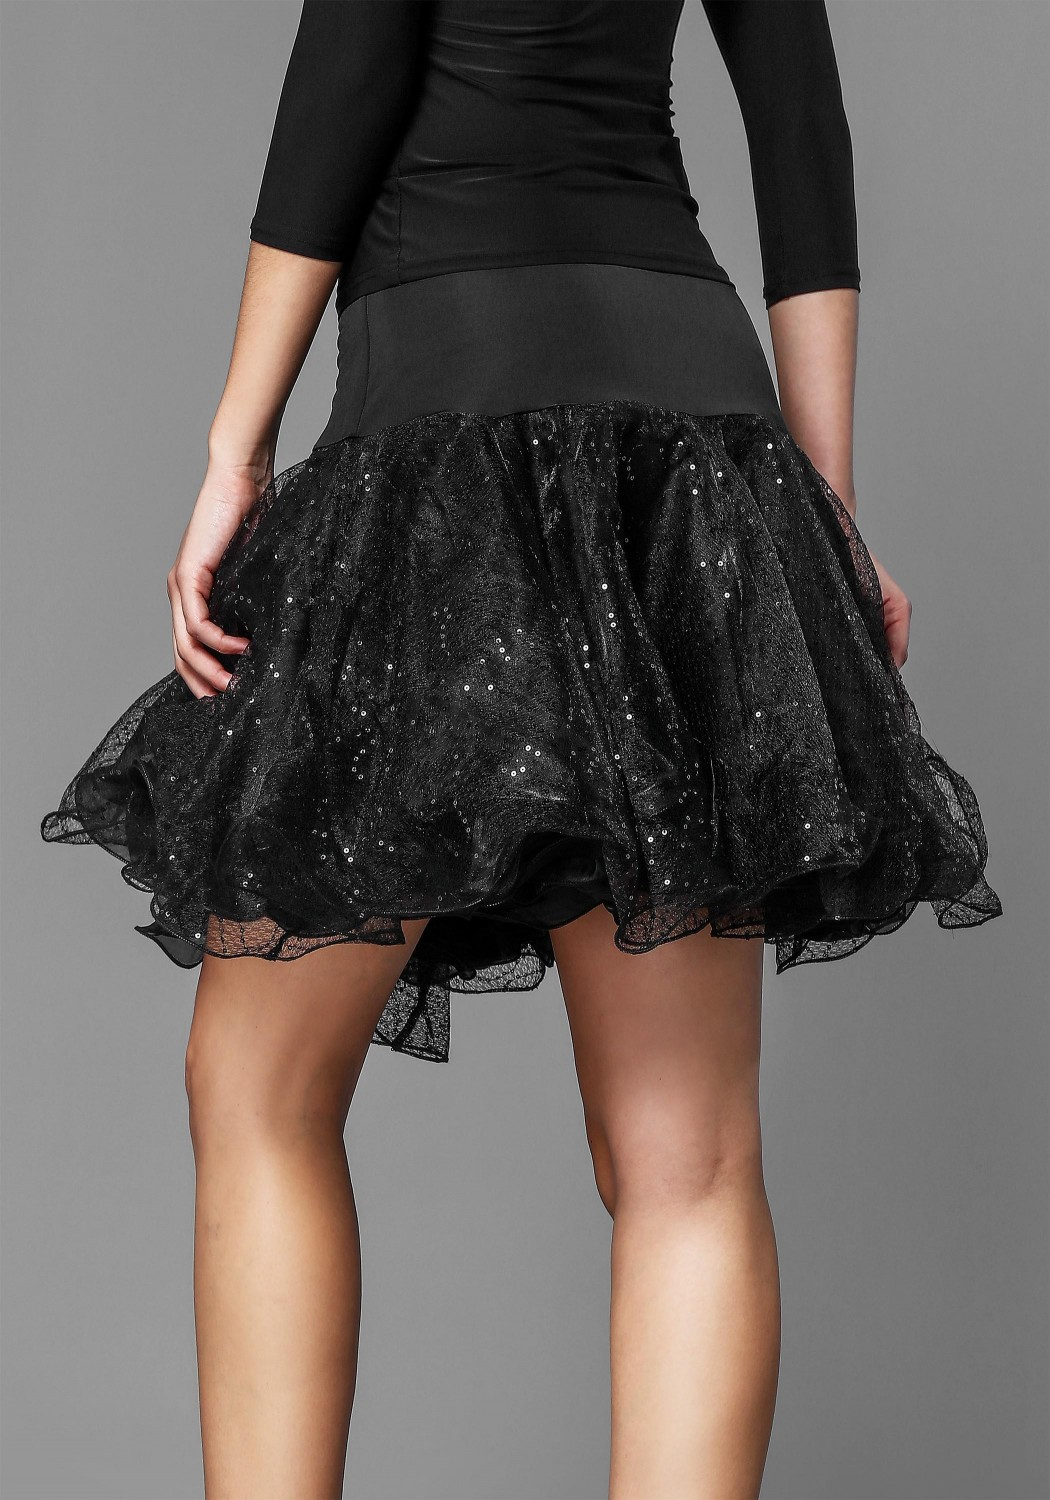 Black Shinning Organdy Latin Skirt